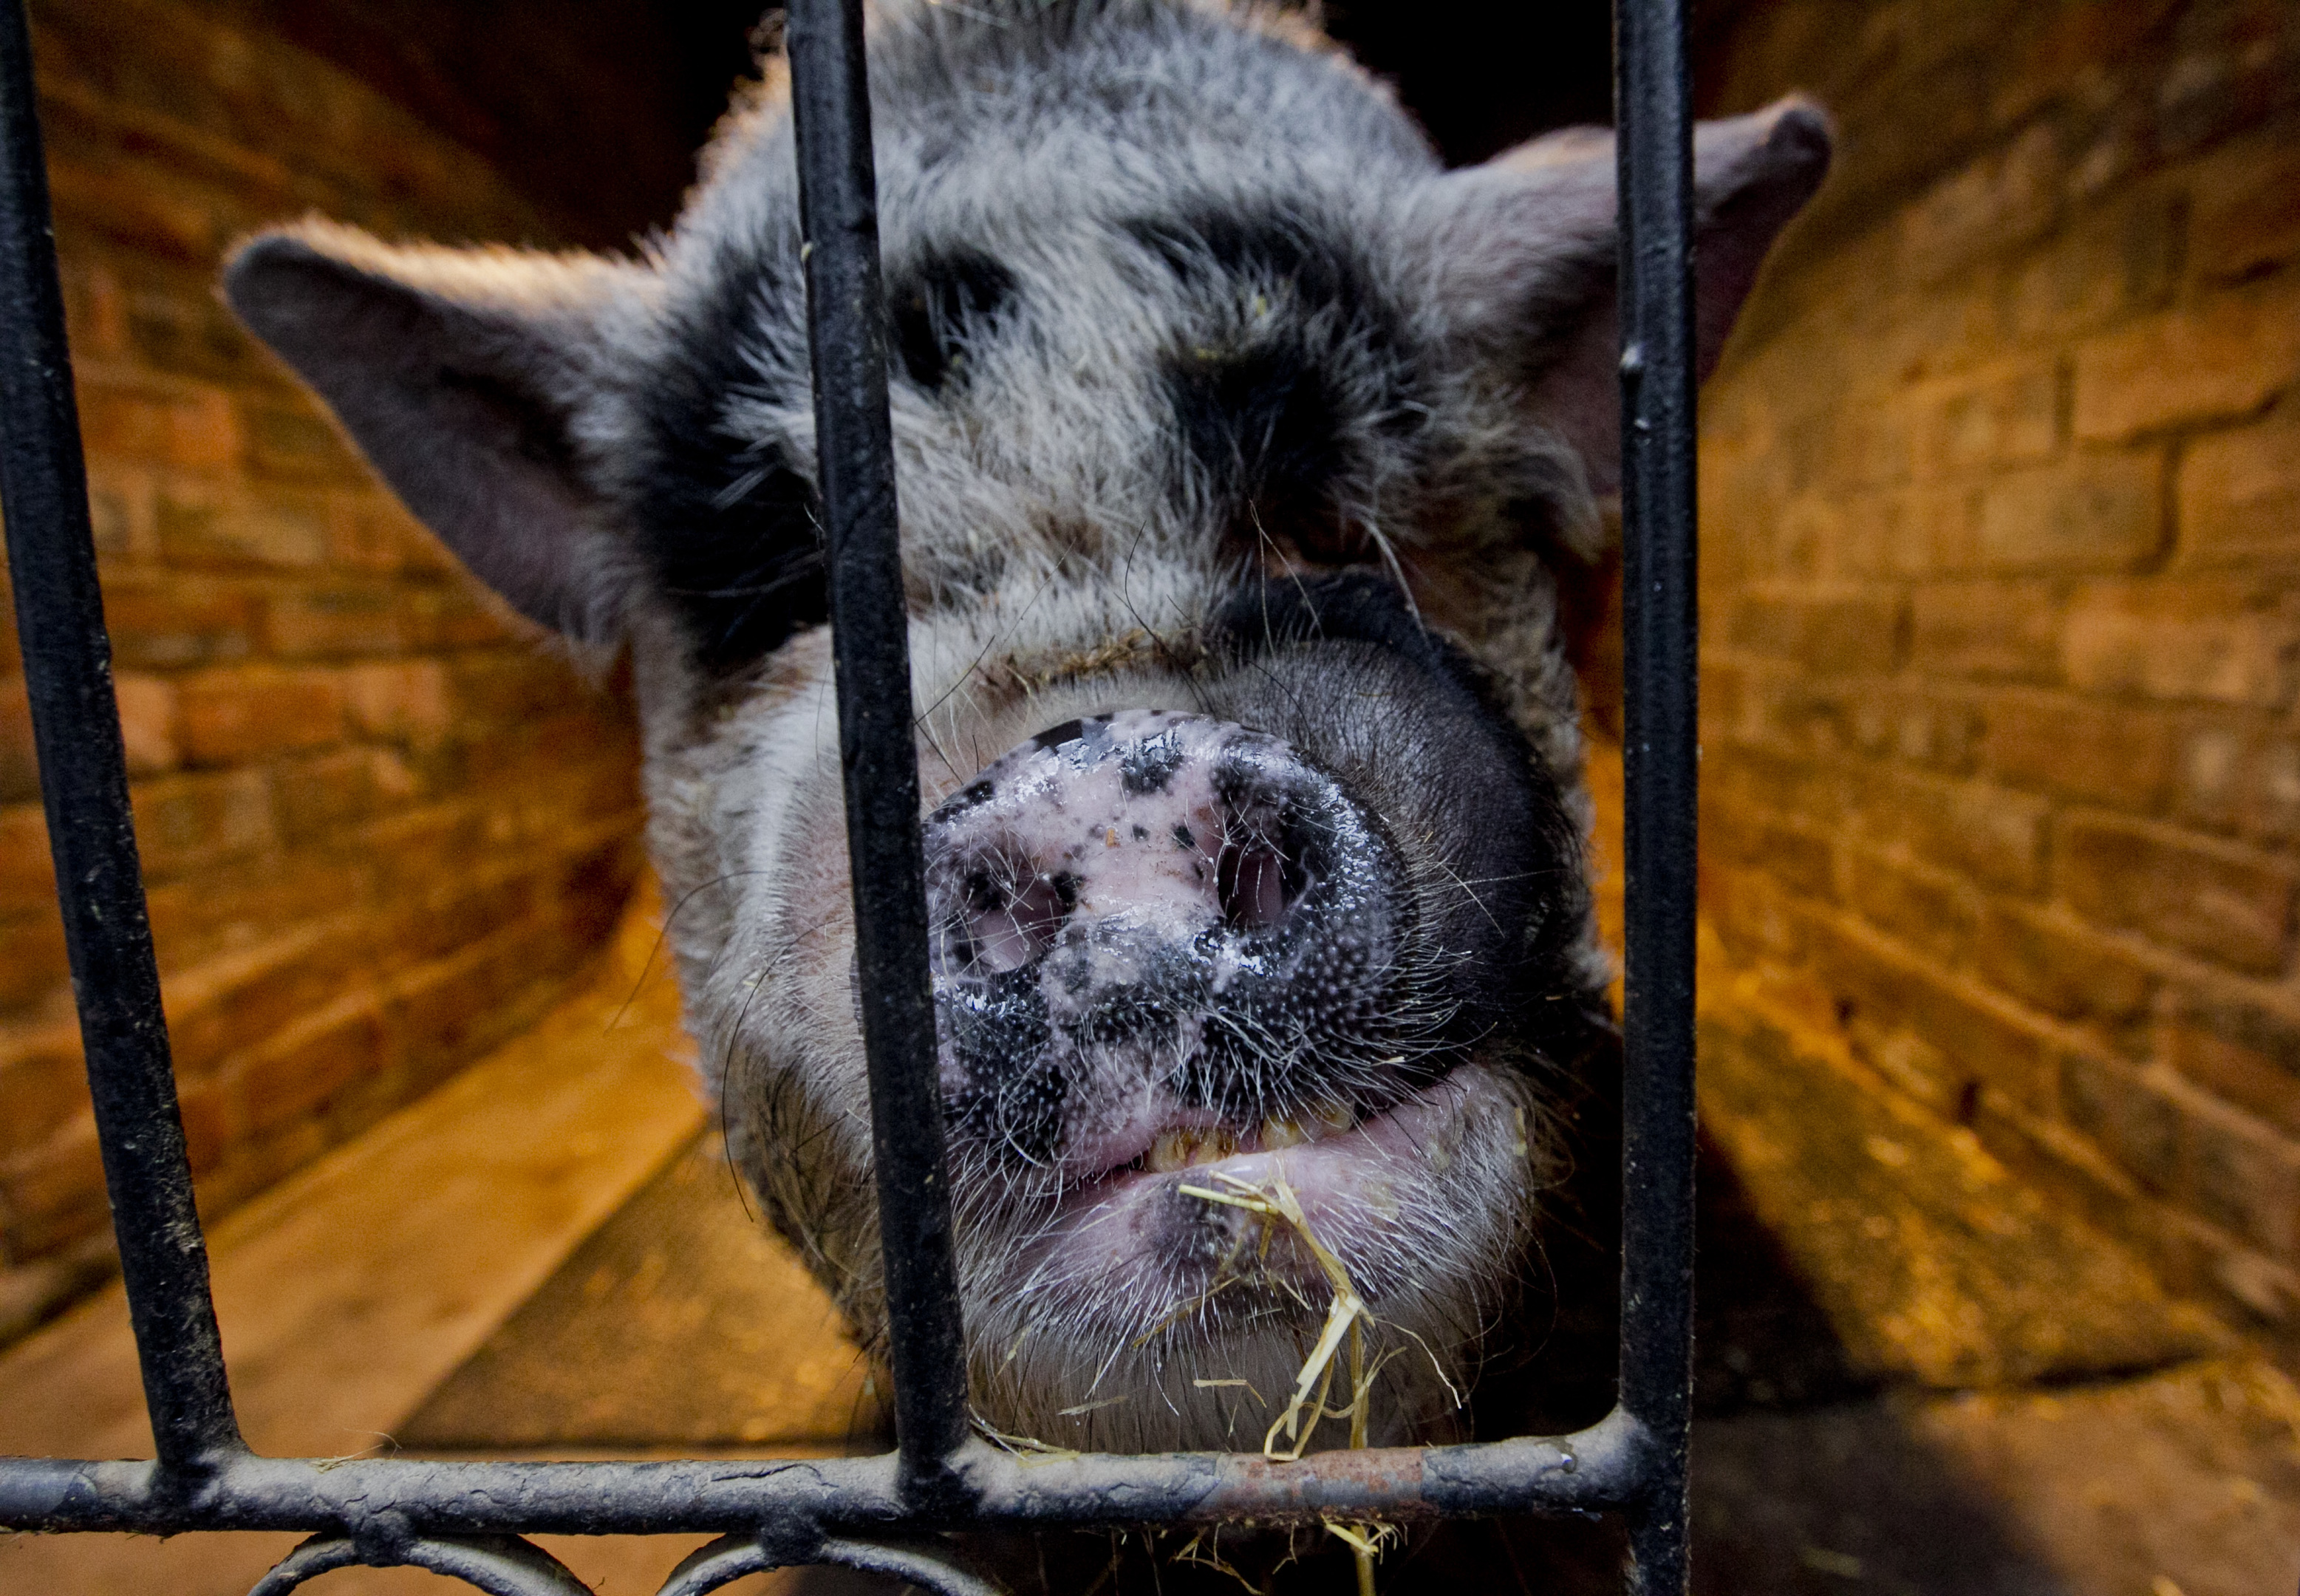 Scientists have given life to pigs four hours after they died.